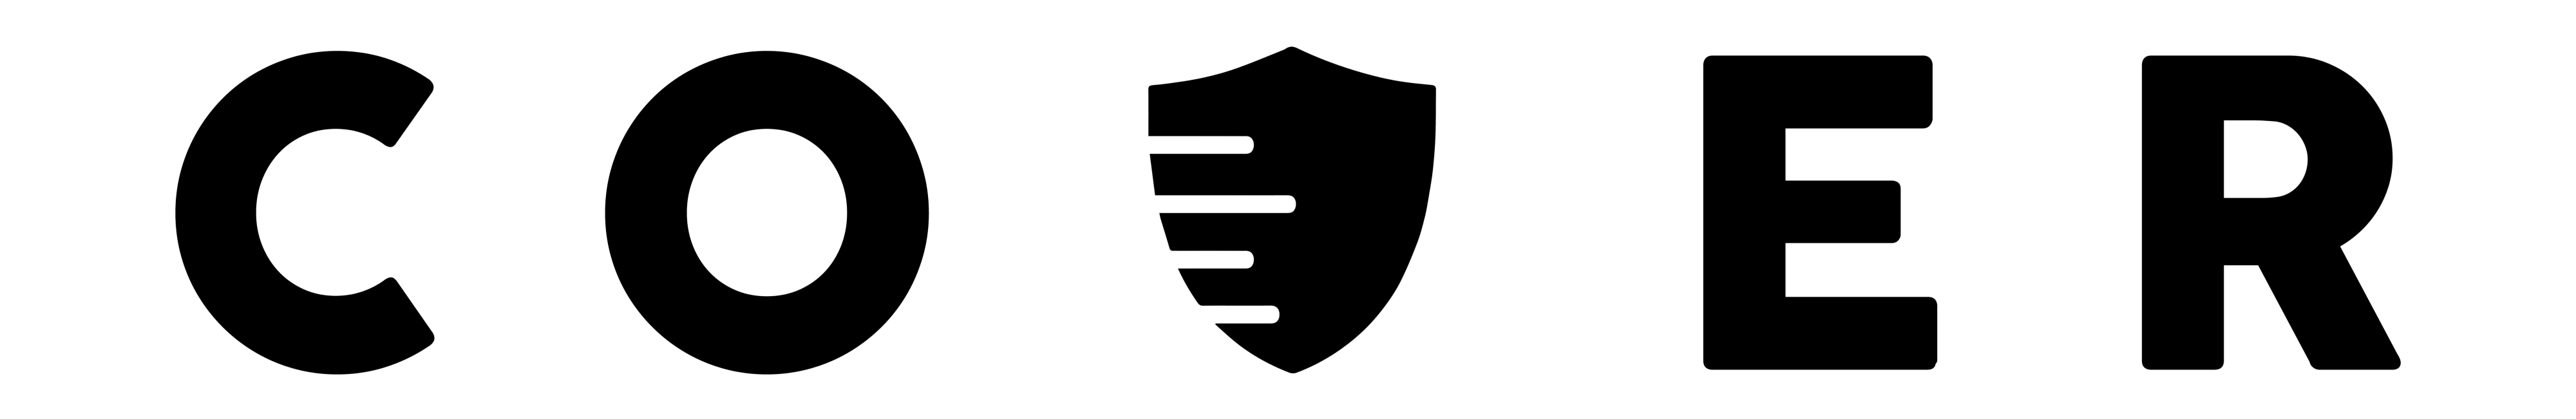 https://www.crypto-advice.com/images/uploads/1610723109_48d15d25b00a6c5f62bcfd1857663a05_cover-protocol.png